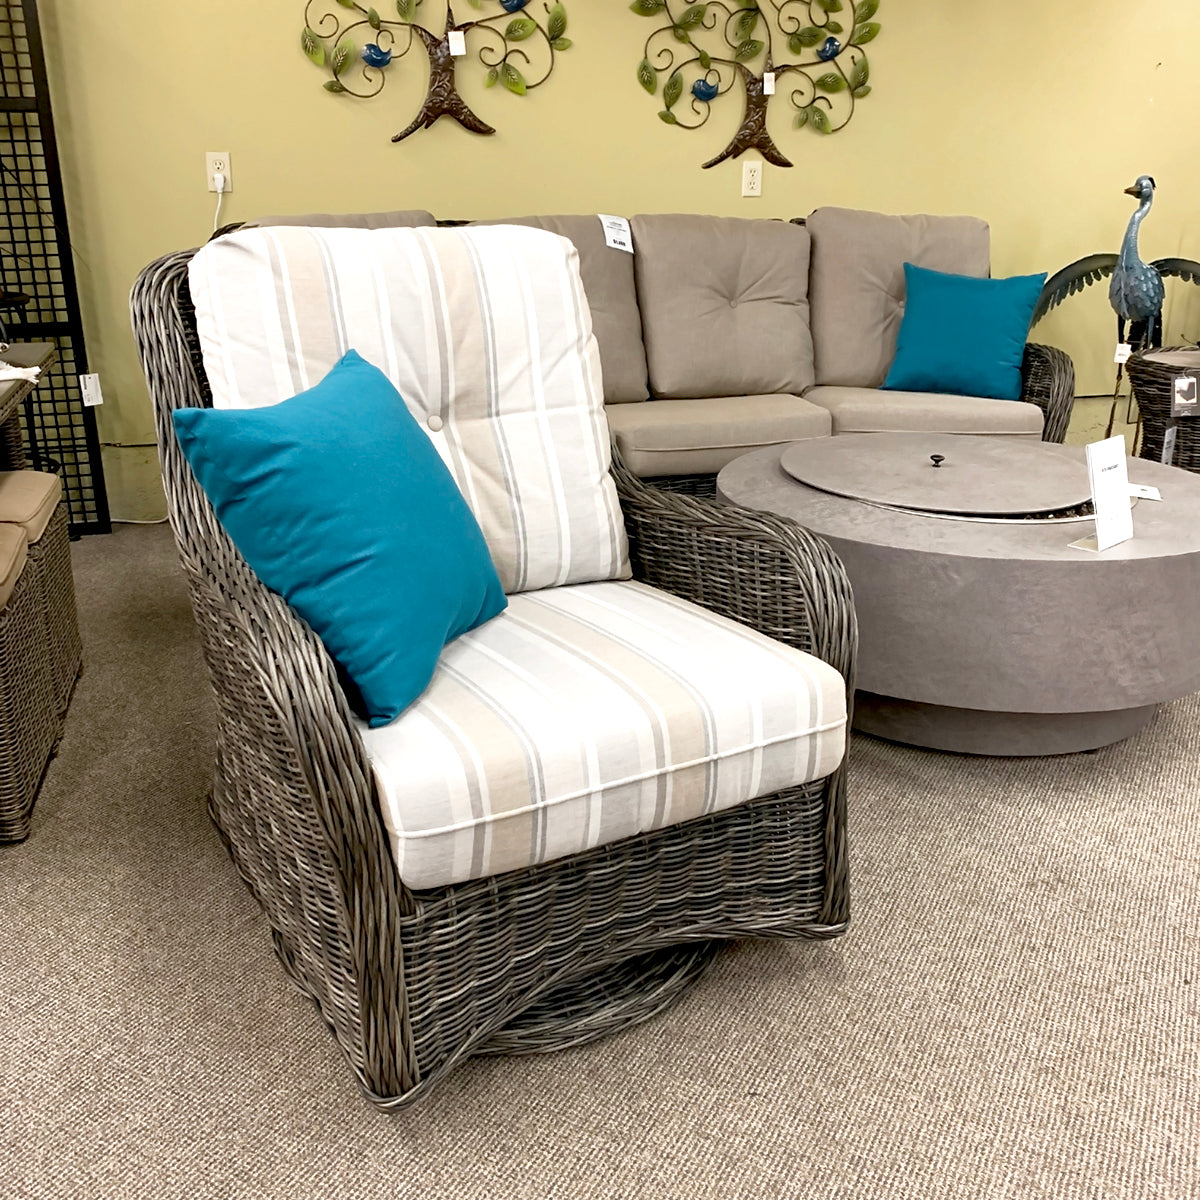 West Hampton Patio Lounge Swivel Glider Chair is available at Jacobs Custom Living our Jacobs Custom Living Spokane Valley showroom.